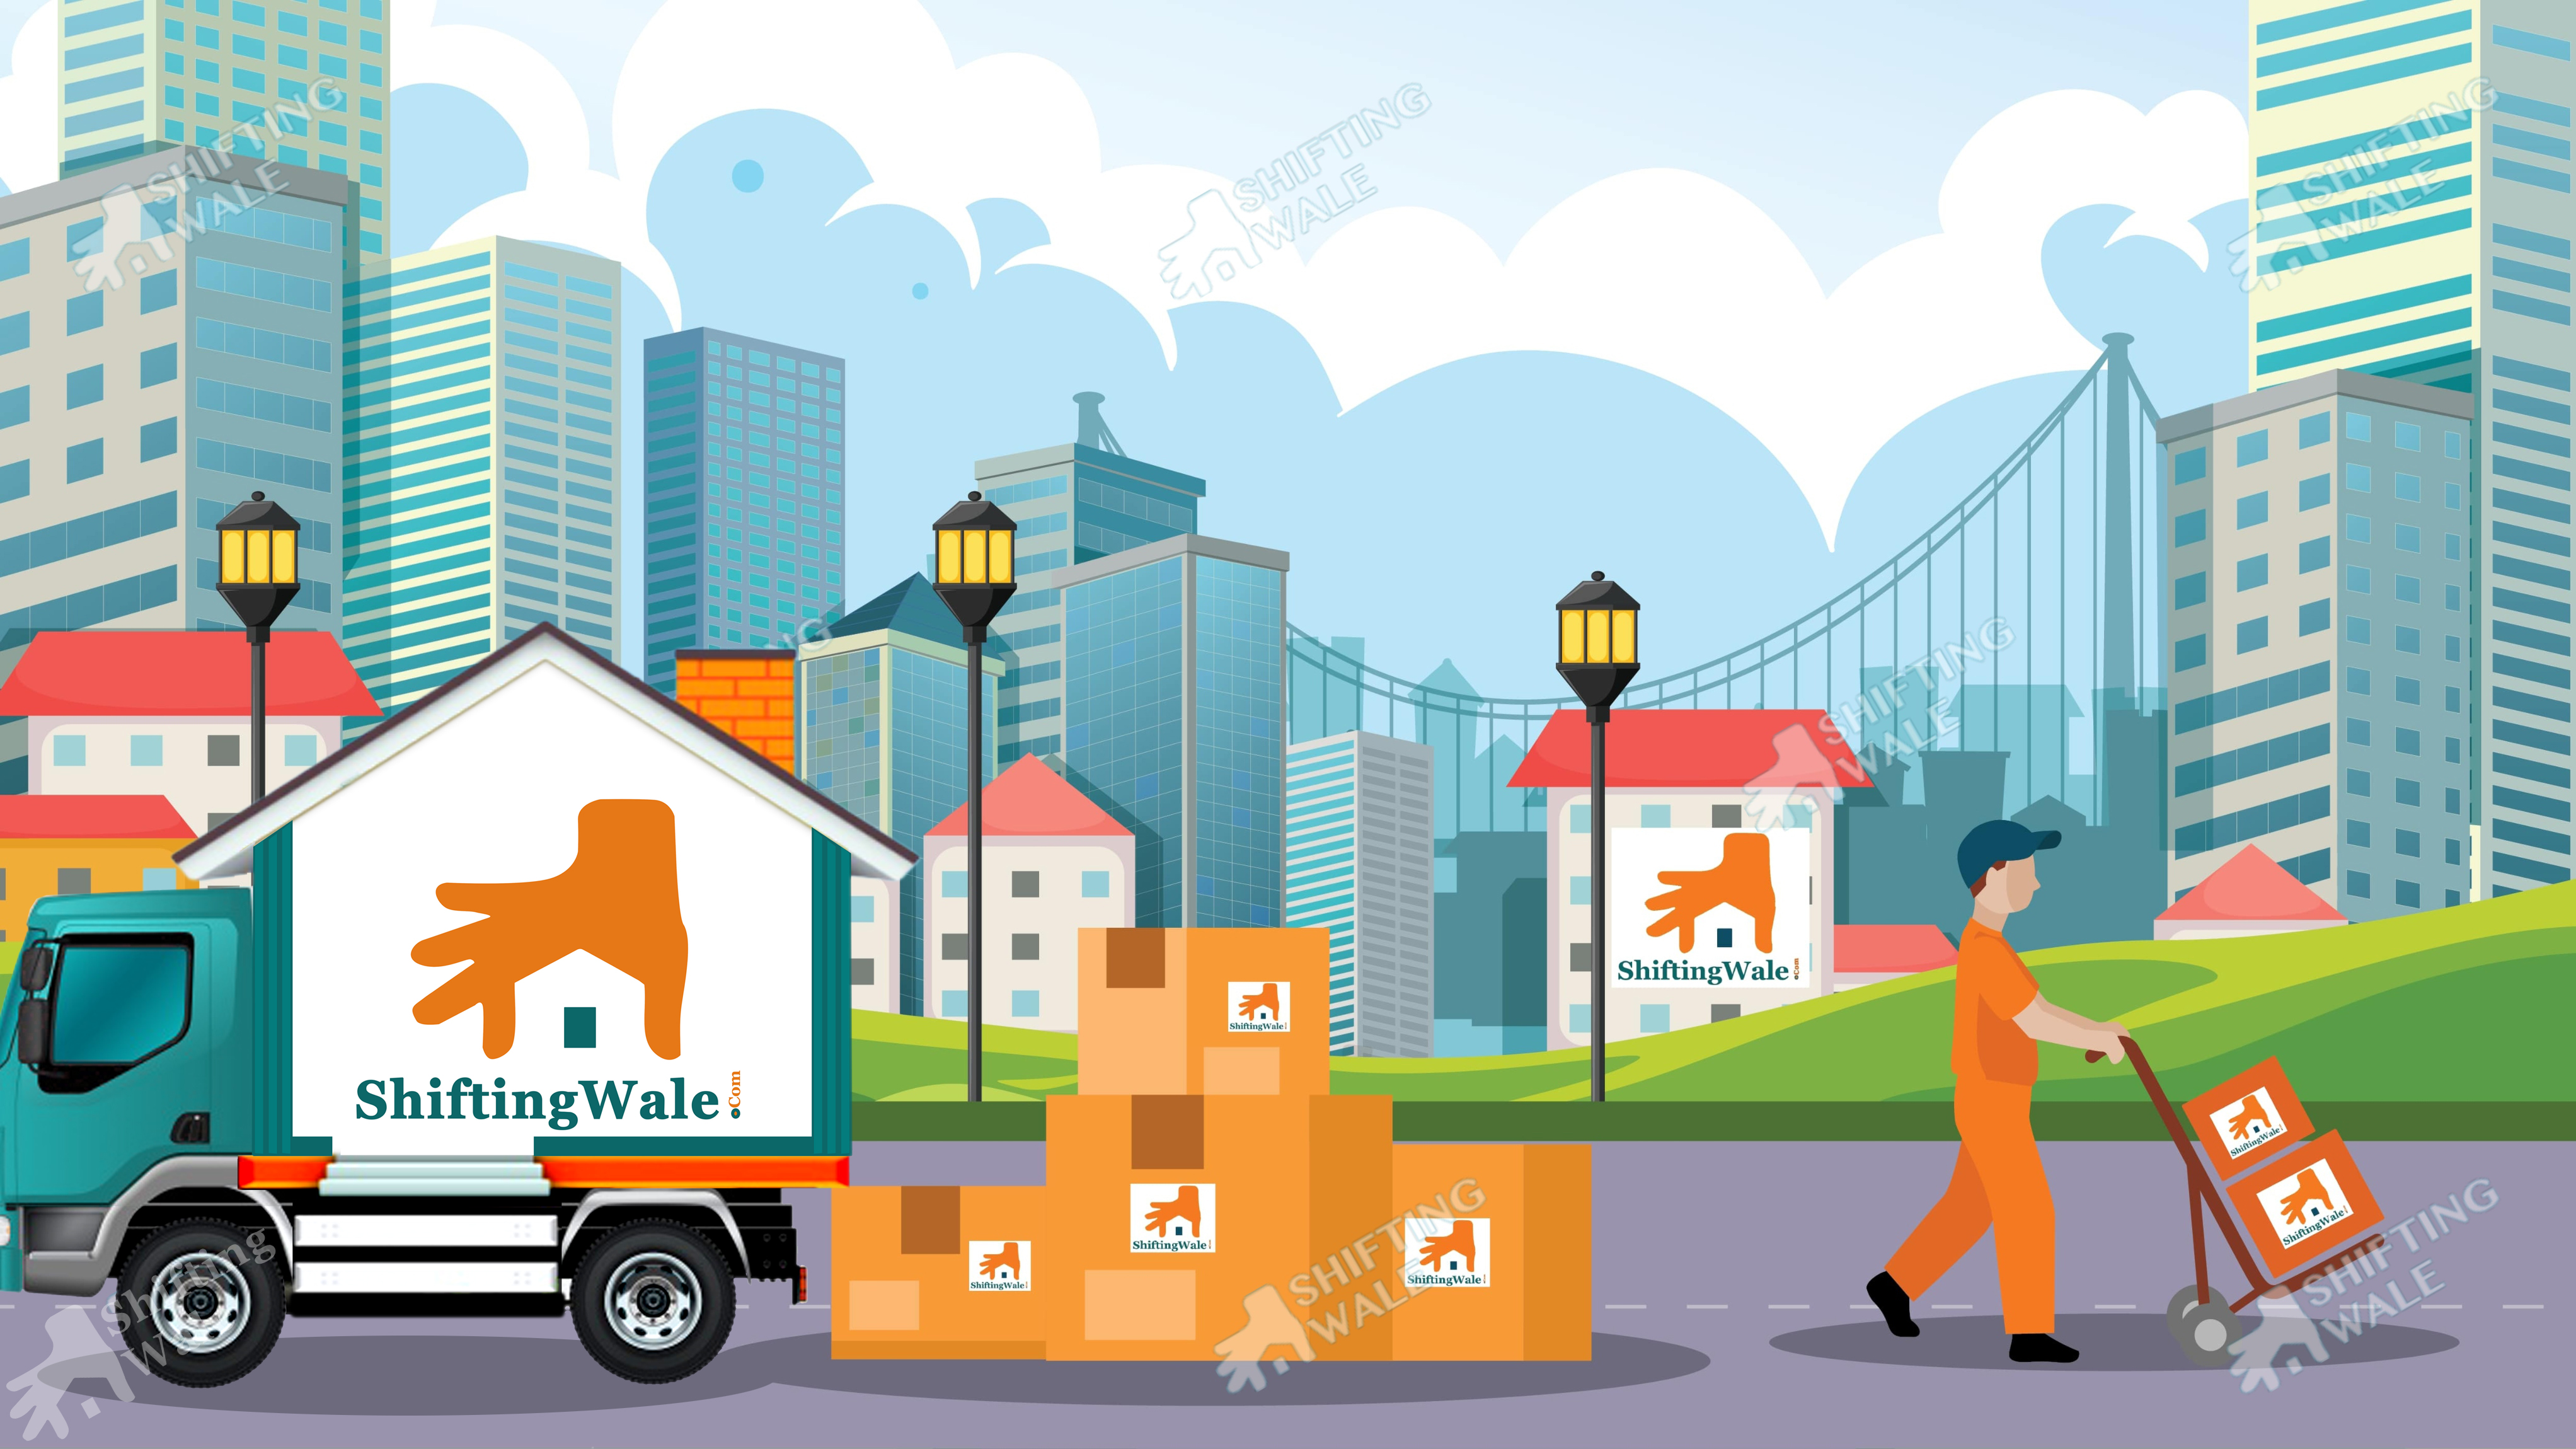 Movers and Packers Services from Dehradun Haridwar Rishikesh Roorkee Saharanpur to Kanpur Lucknow Allahabad Varanasi